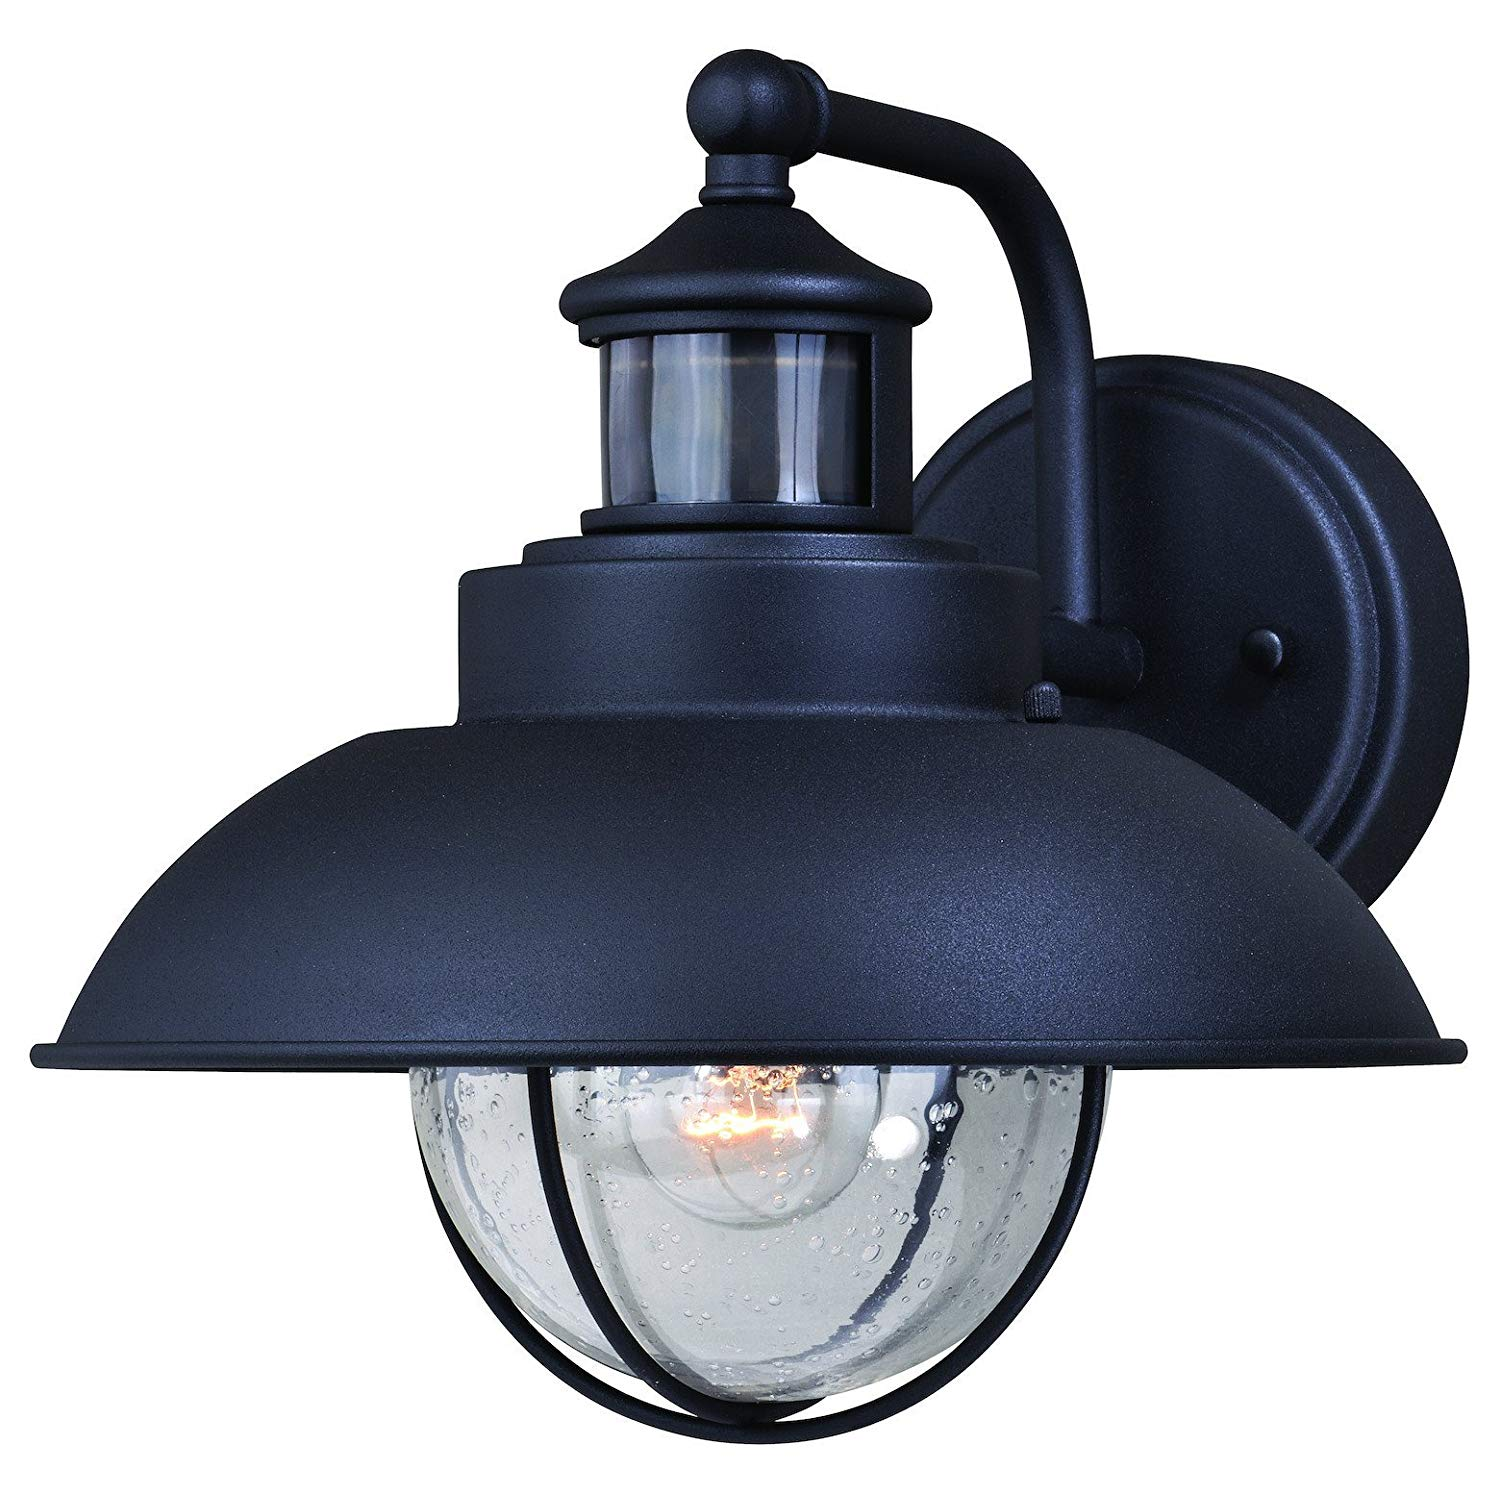 Harwich Dualux 10In. Outdoor Wall Light Textured Black